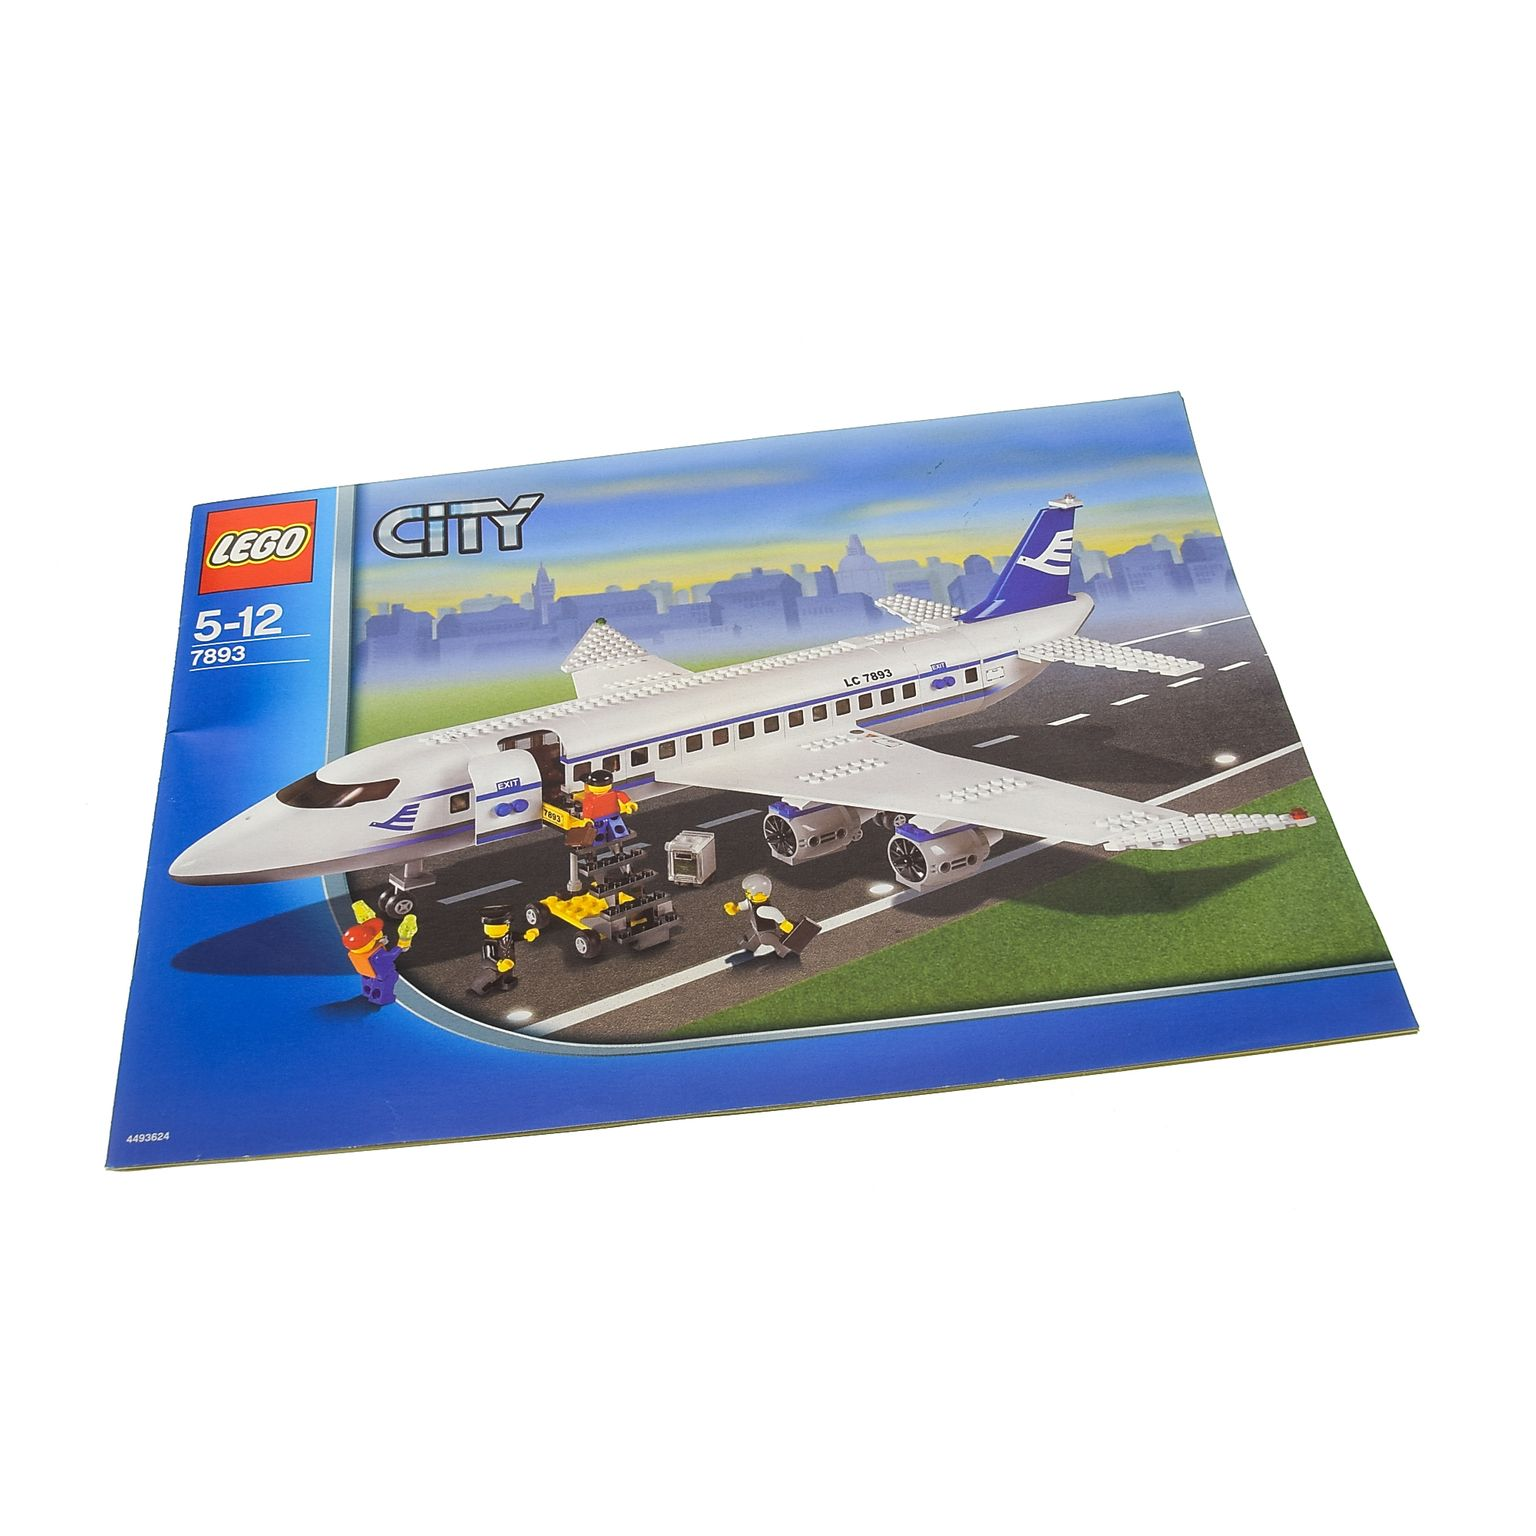 1 X Lego Brick Instructions Town City Airport Passenger Planer